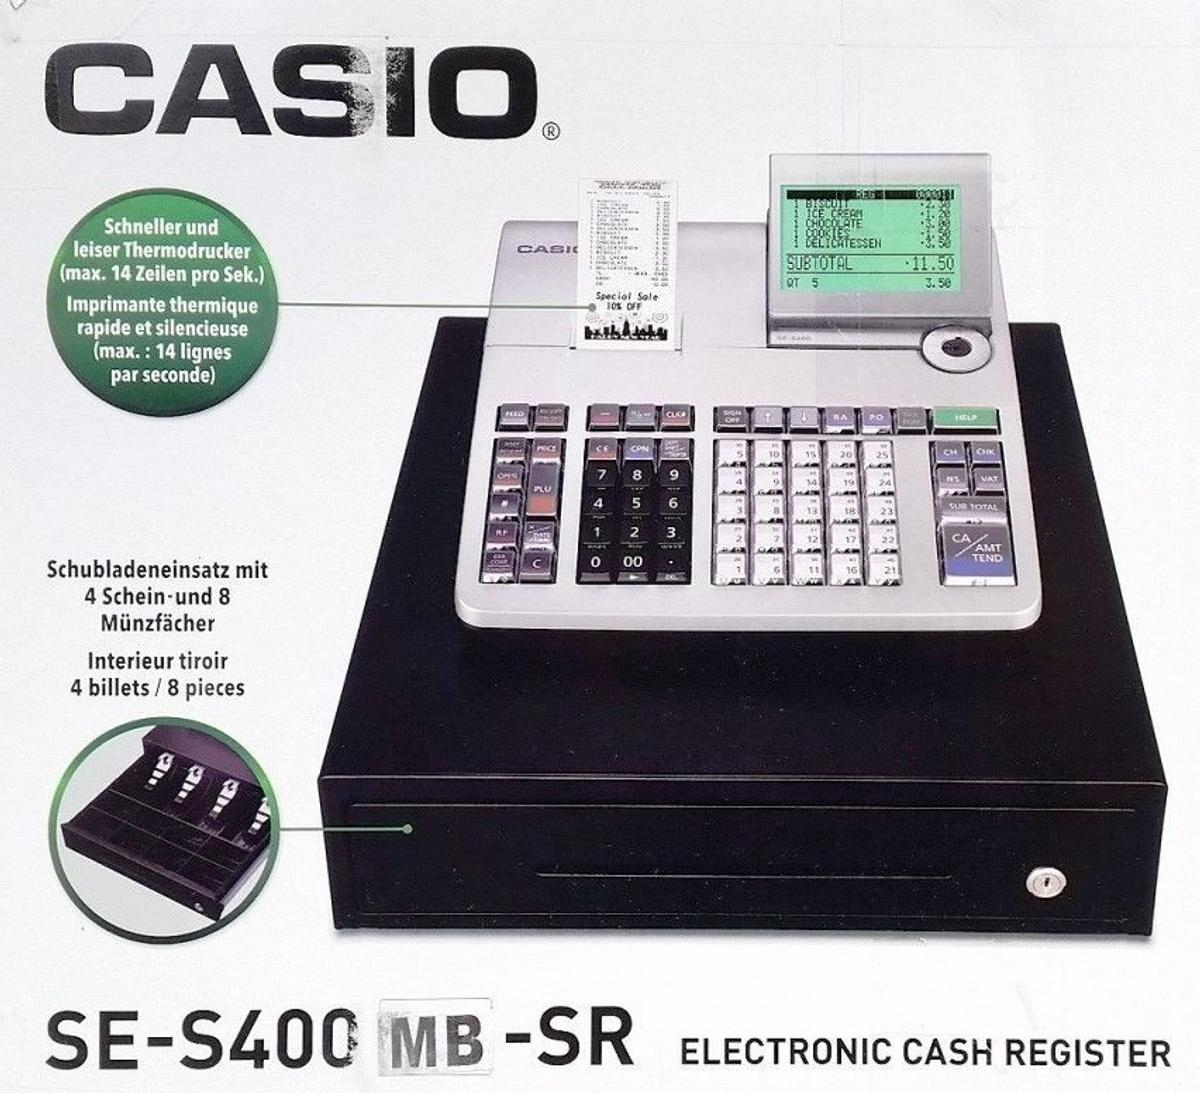 Casio SE S400 Cash Register EPOS System in DY5 Dudley for